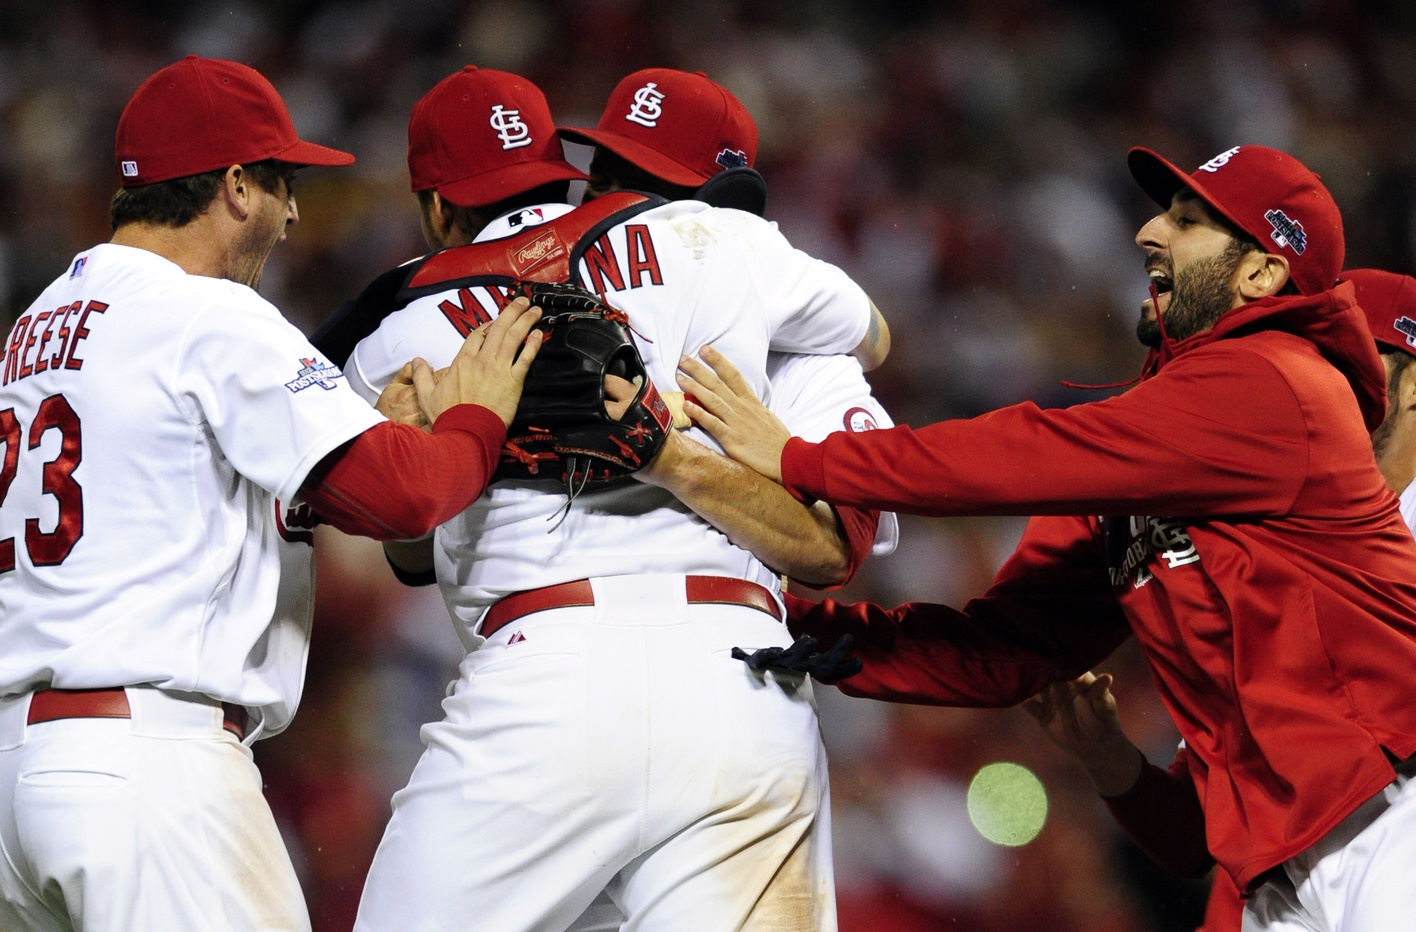 Beltran and the Cardinals Heading to the World Series